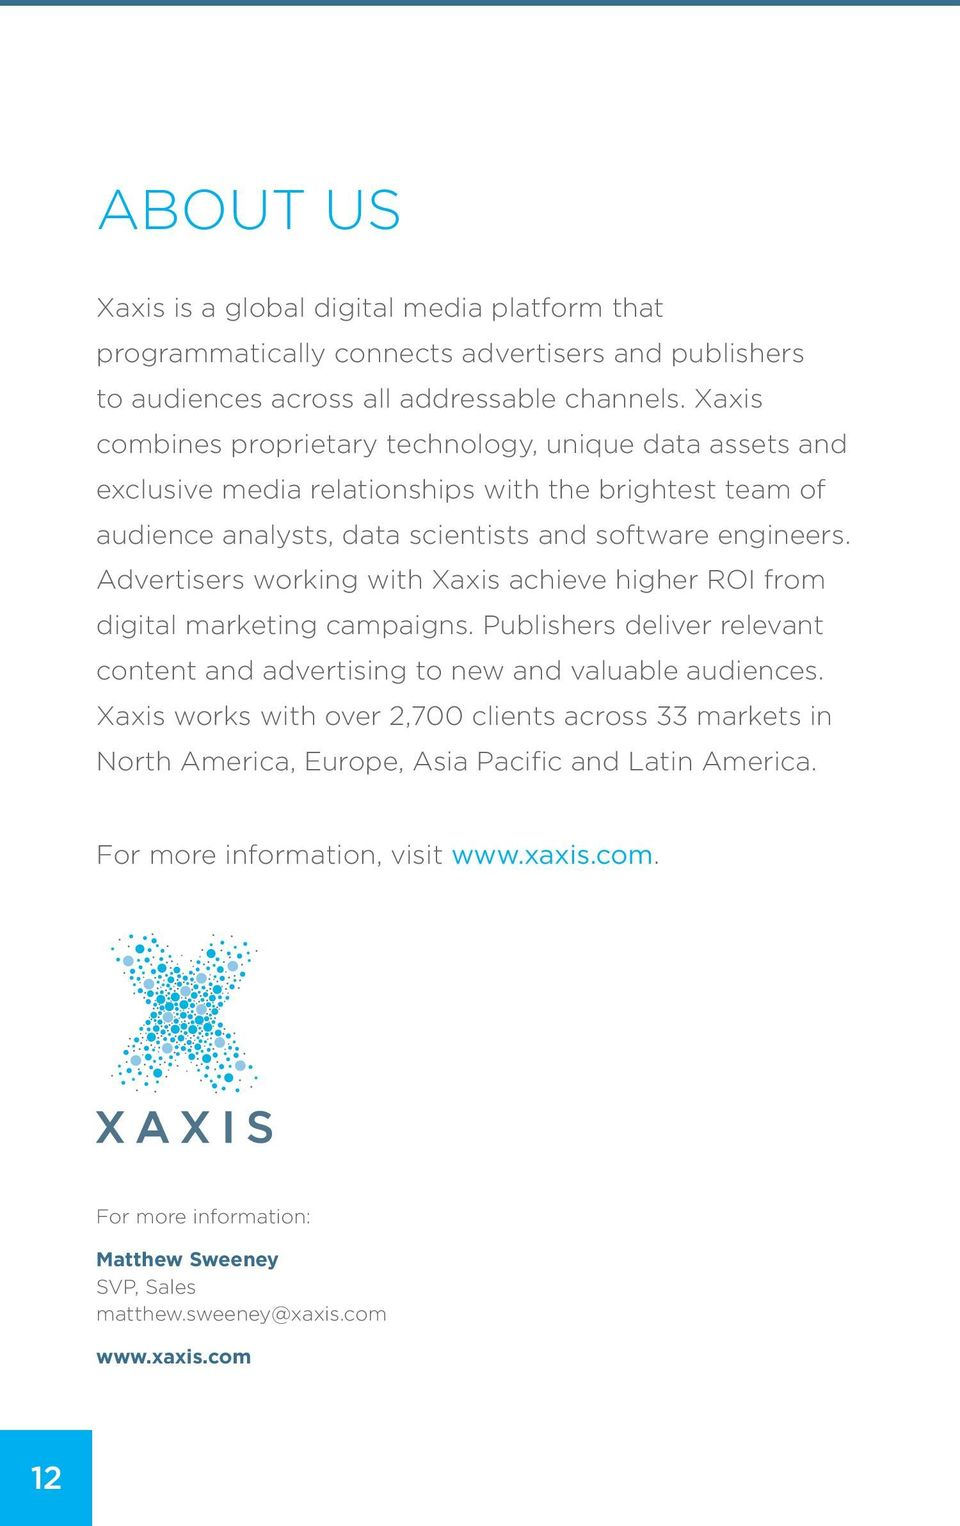 Advertisers working with Xaxis achieve higher ROI from digital marketing campaigns. Publishers deliver relevant content and advertising to new and valuable audiences.